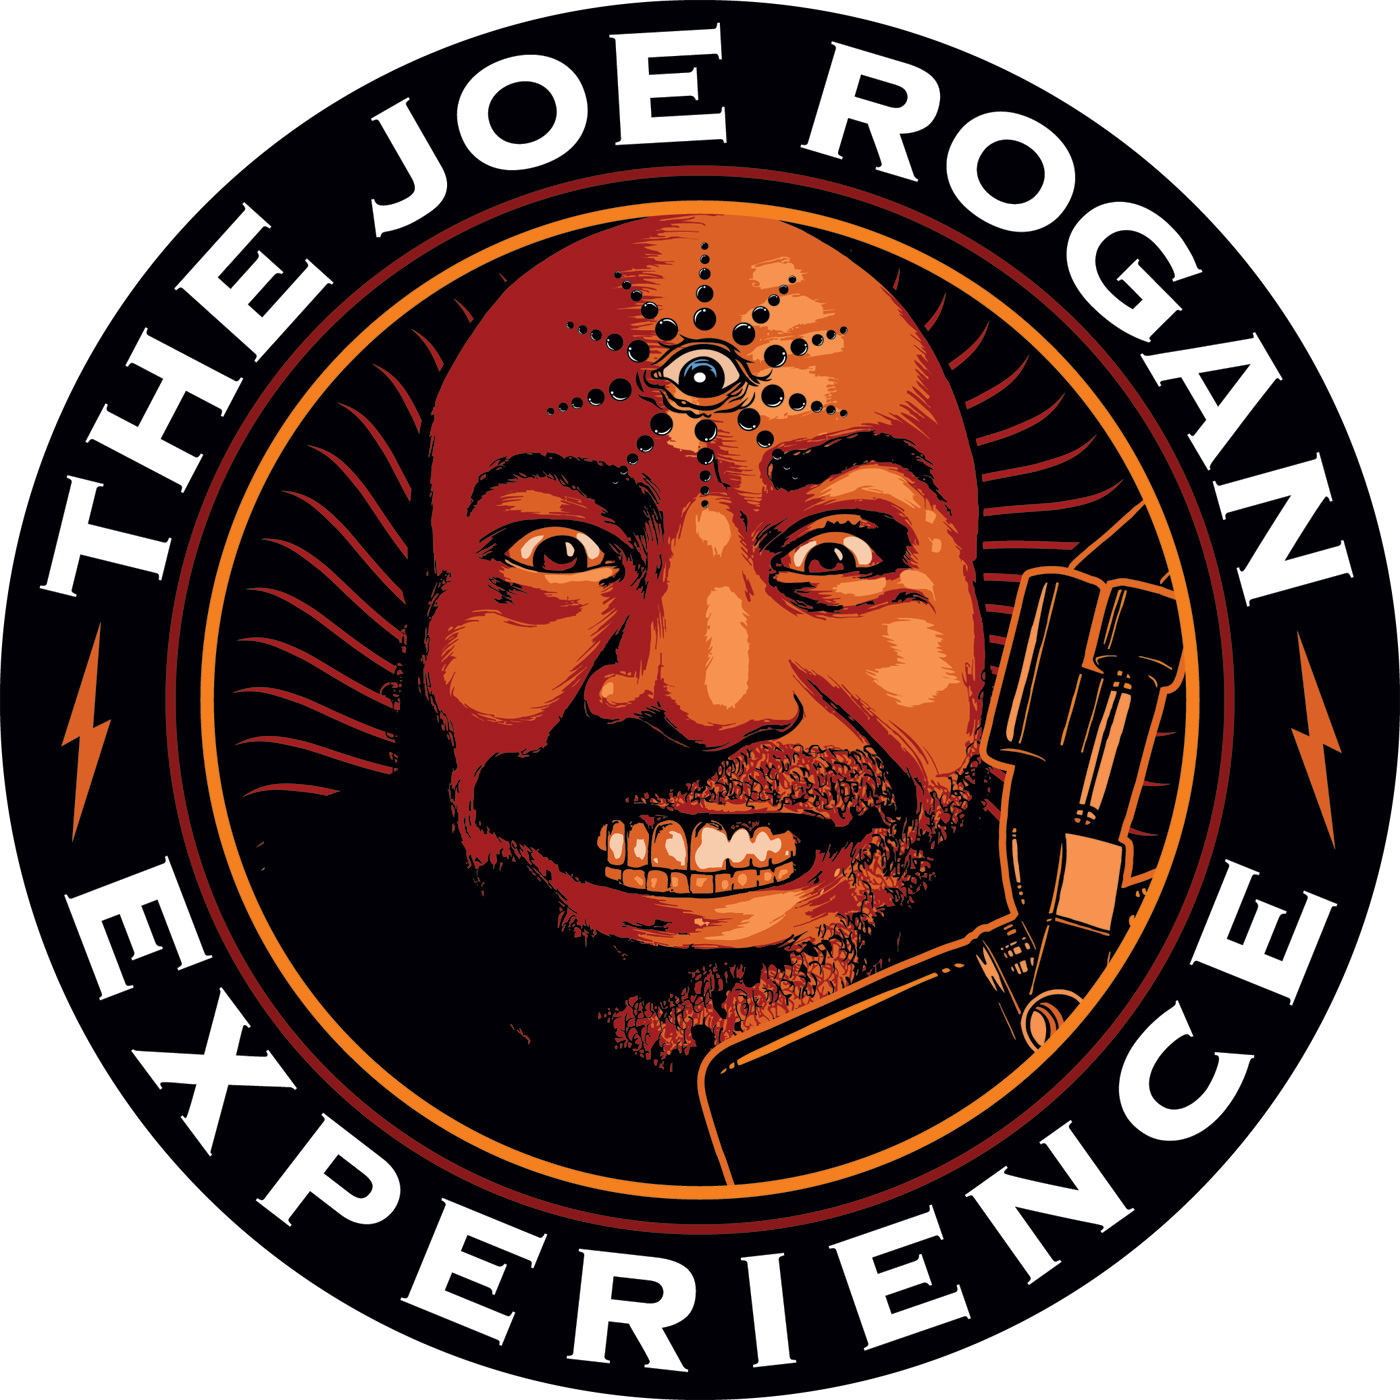 The Joe Rogan Experience PODCAST #111 - Al Madrigal, Brian Redban